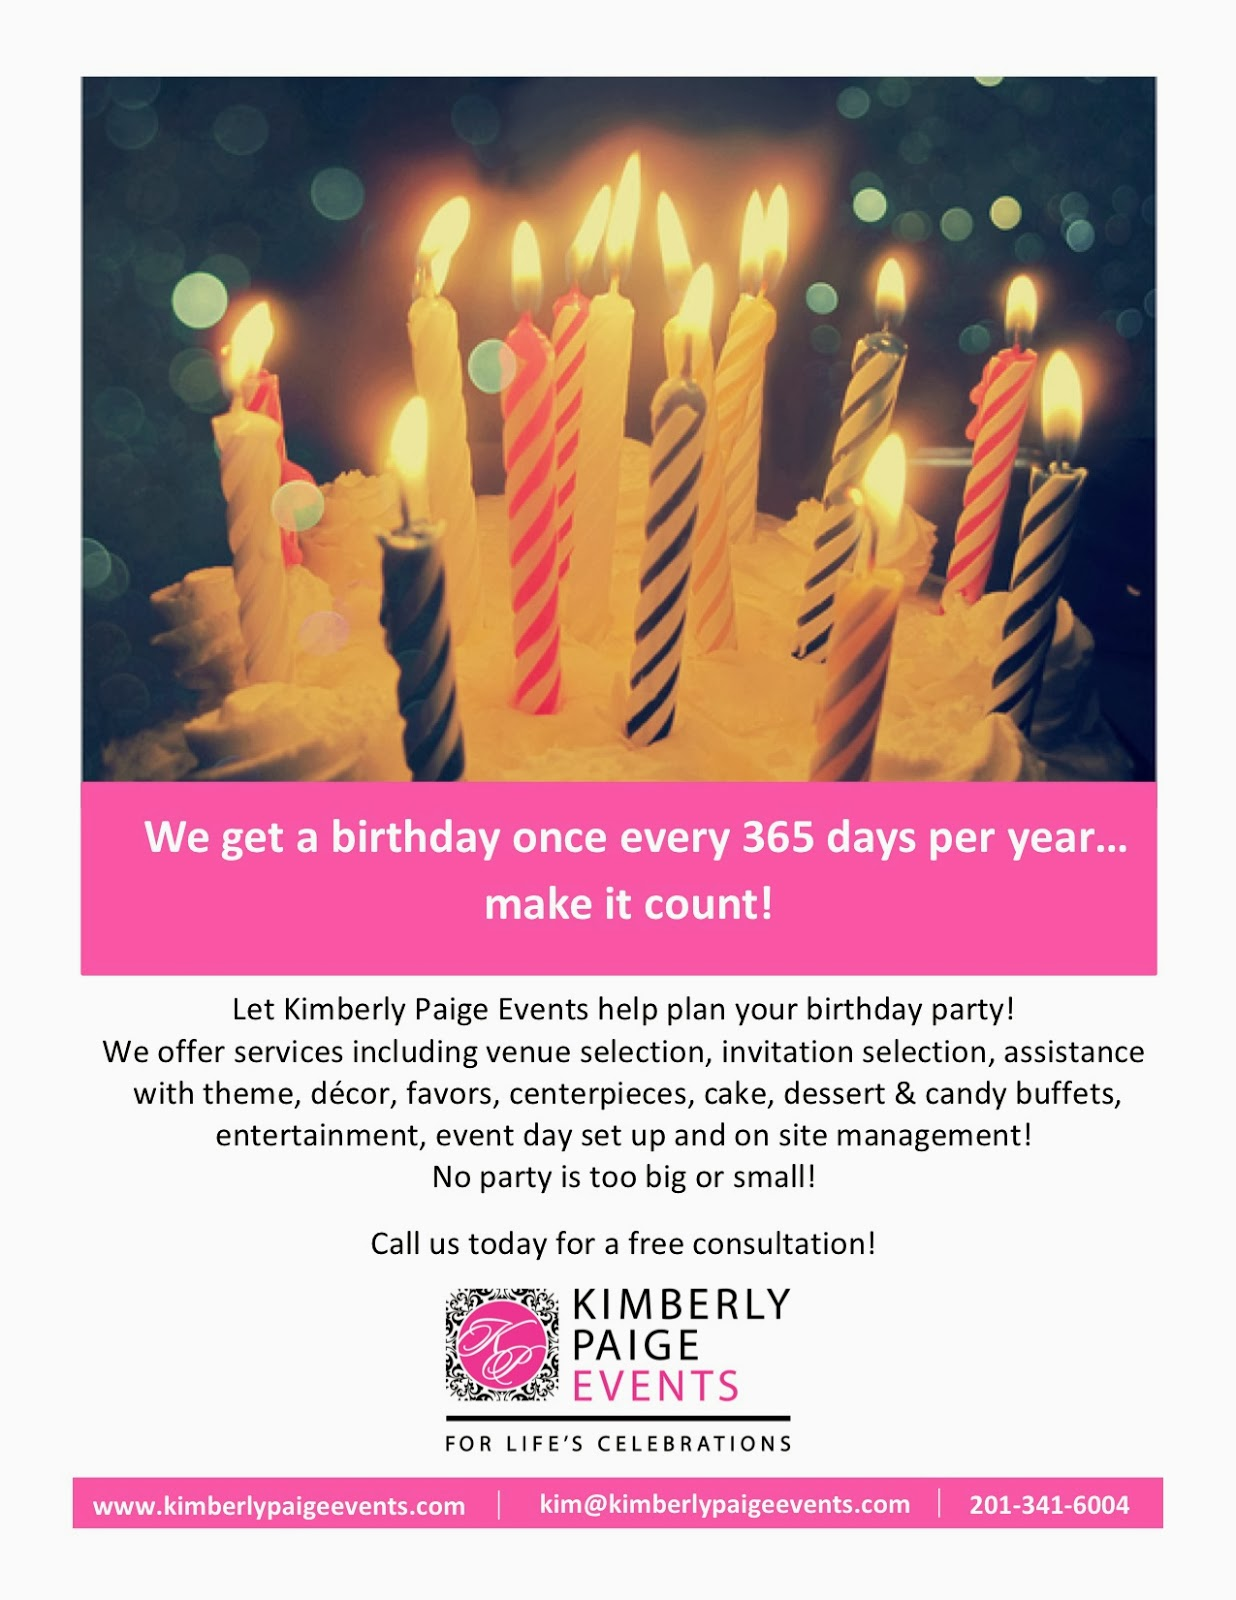 kimberly paige events planning a birthday party